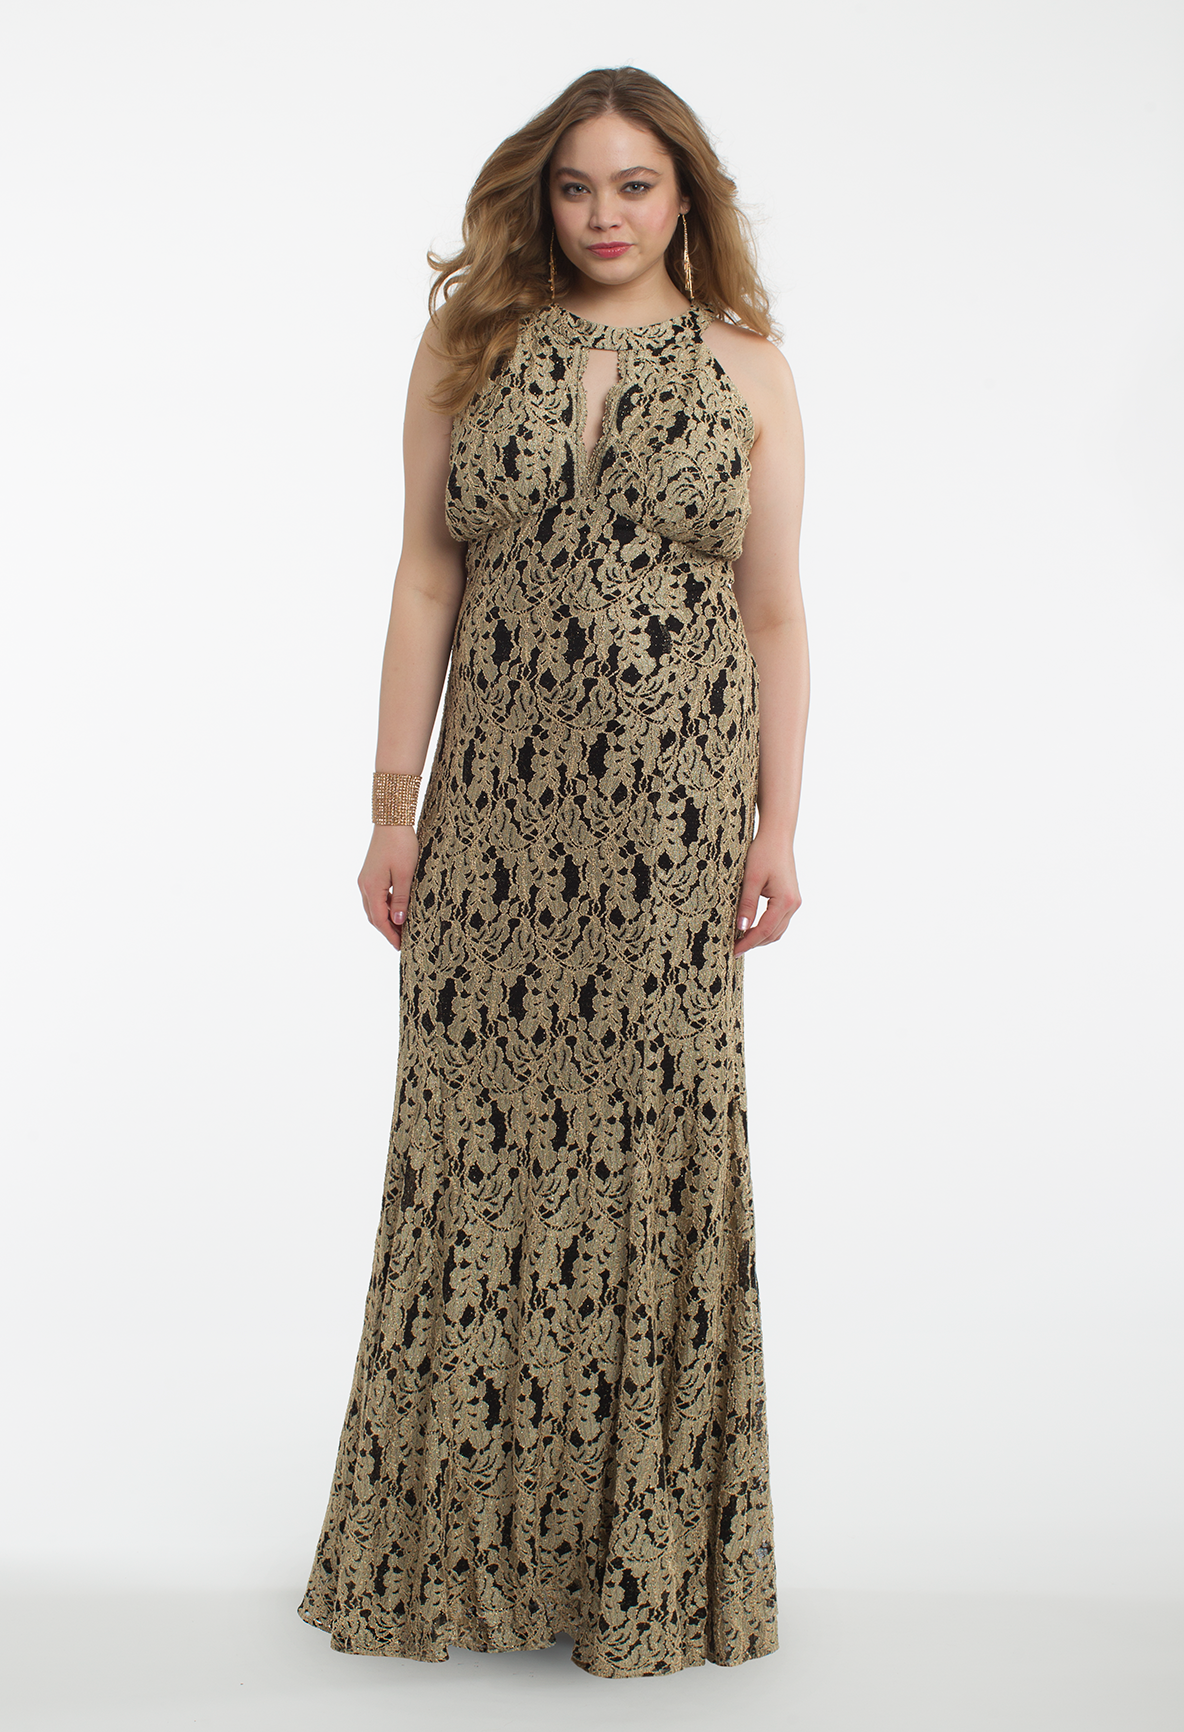 Glimmer like a goddess in this extravagant evening dress the cleo